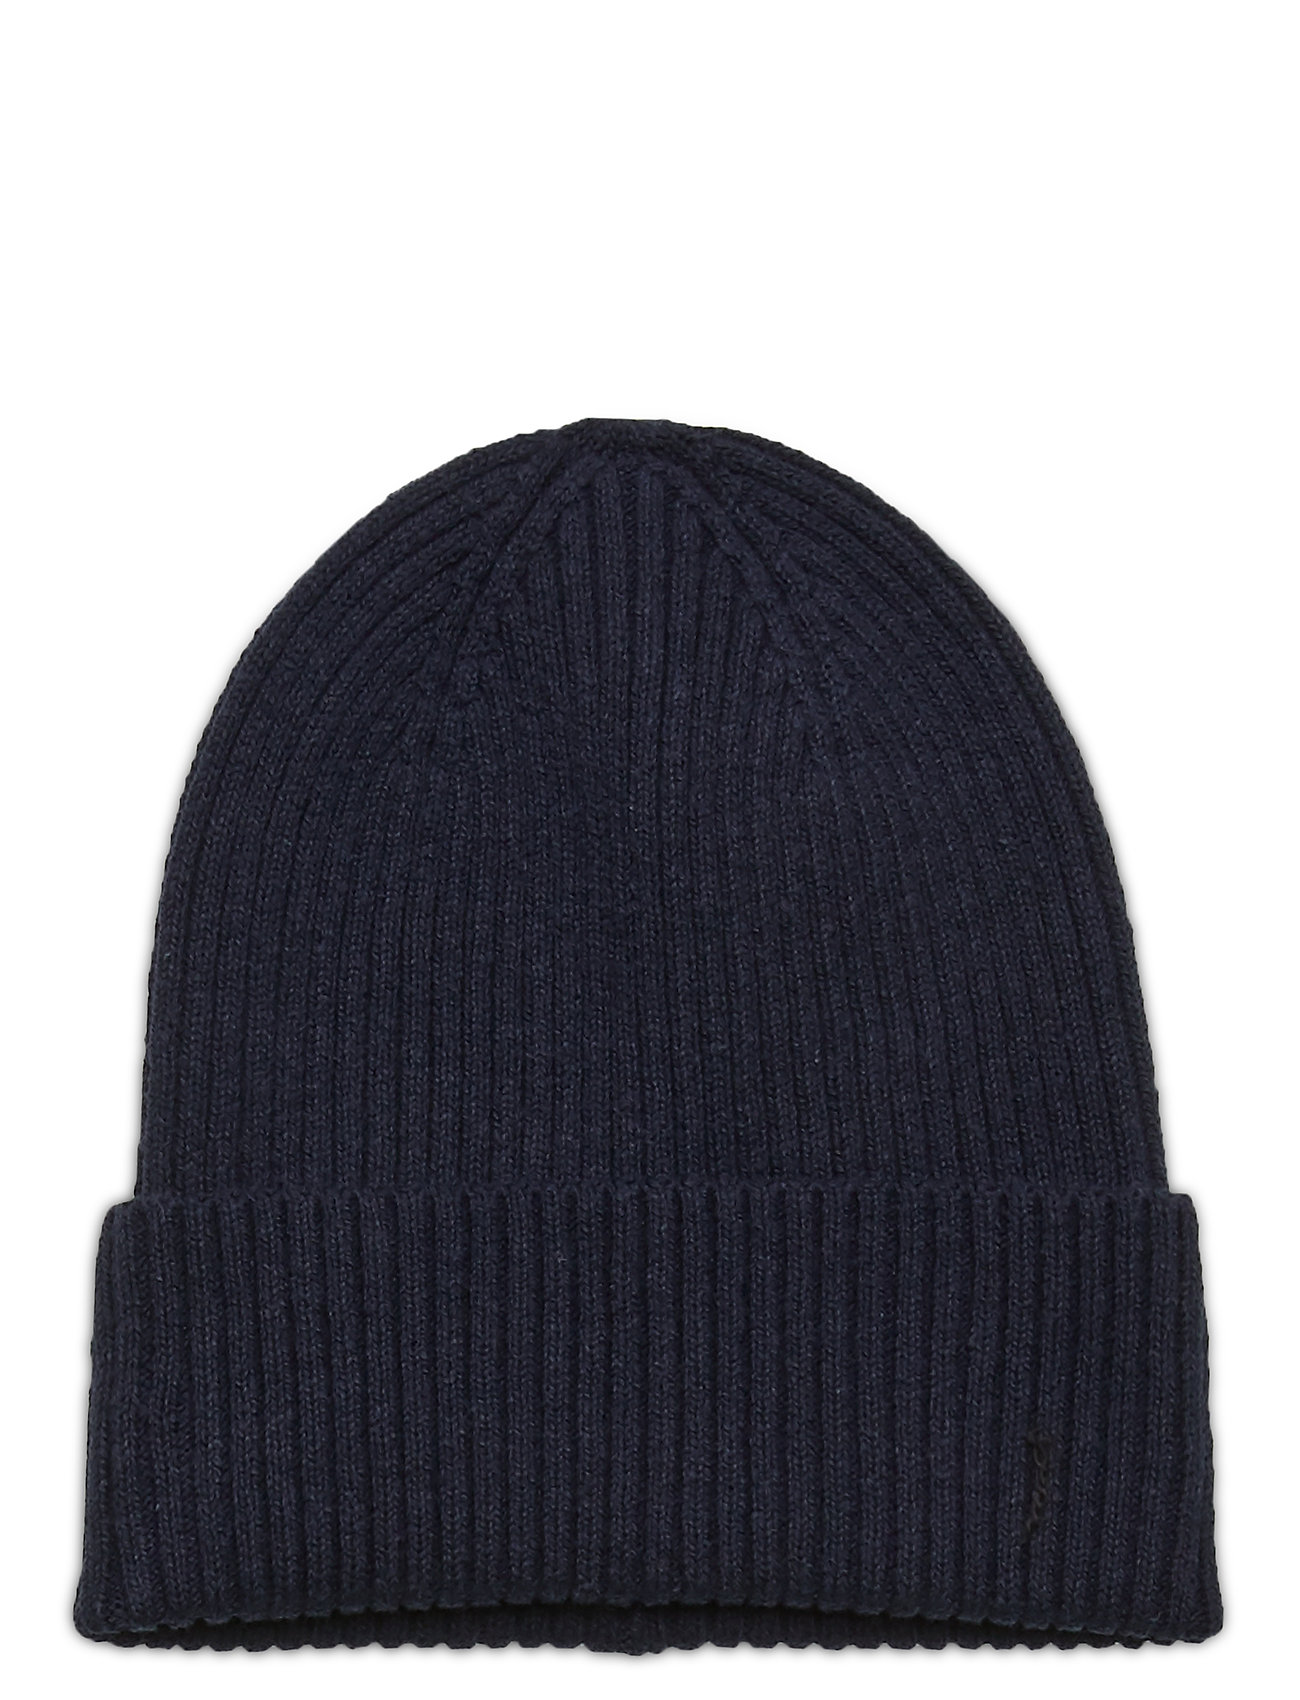 Image of Cap Rib Beanie Sustainable Accessories Headwear Hats Blå Lindex (3442419633)